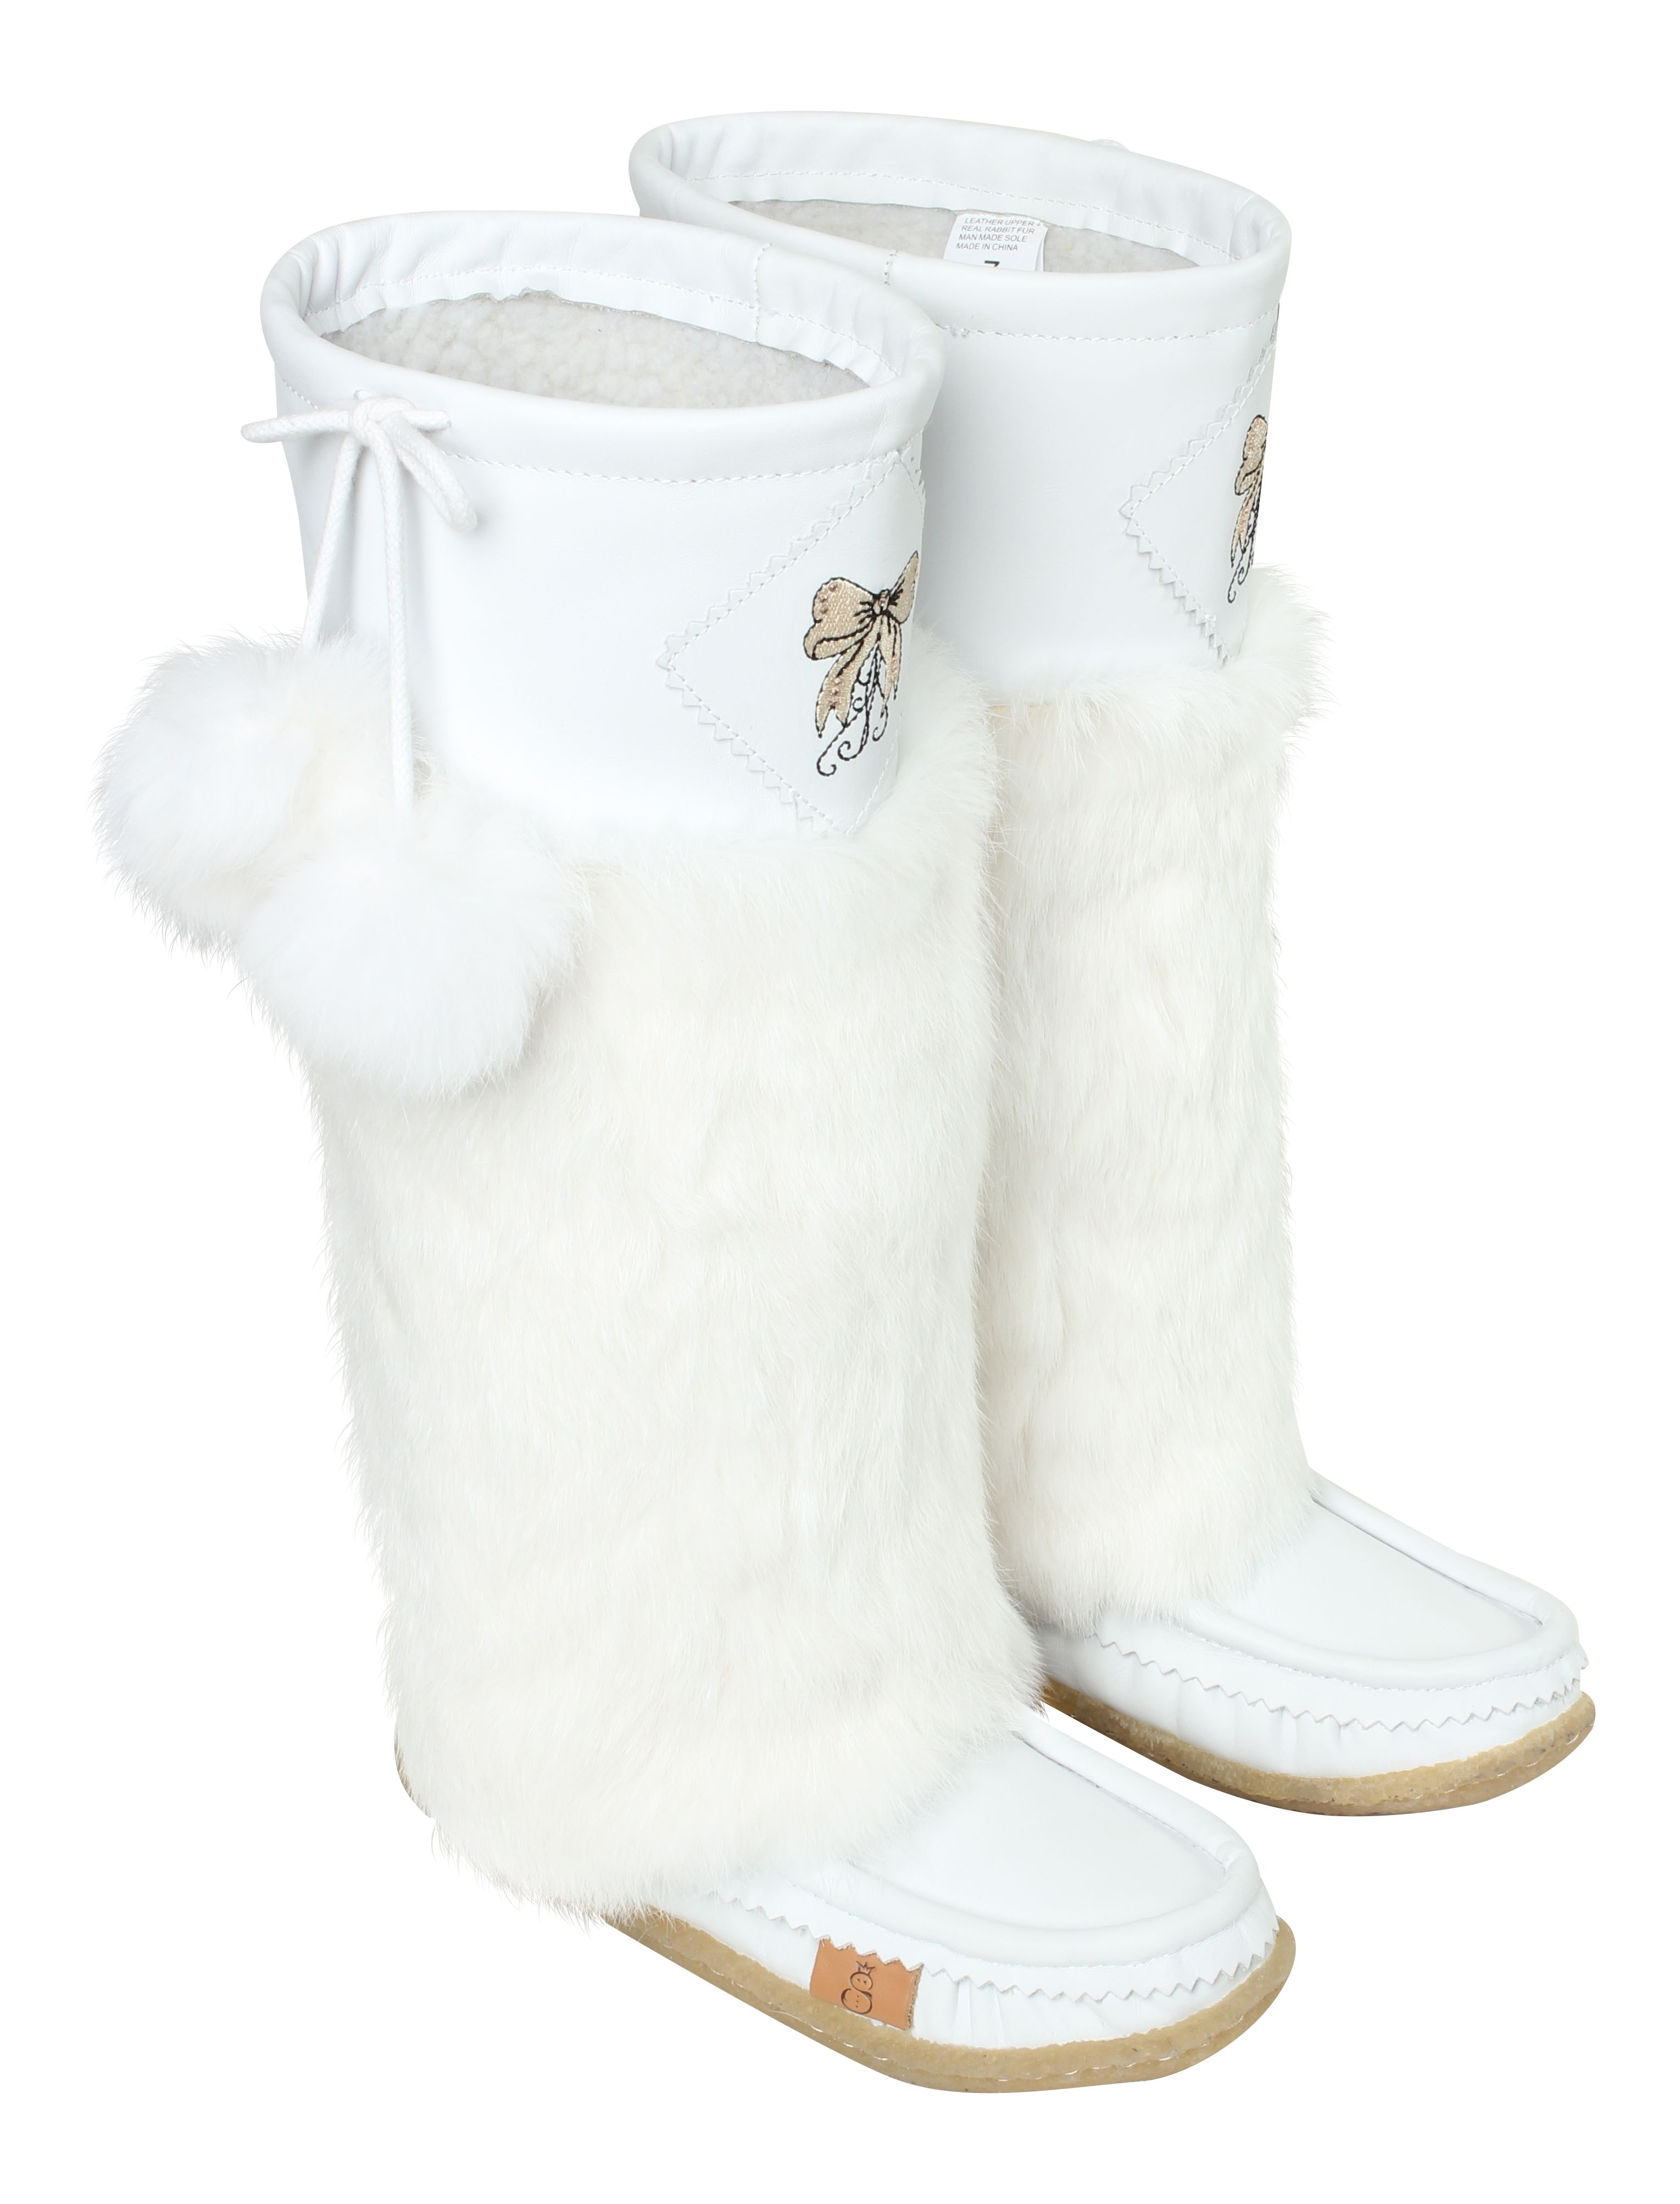 cf02de7235a Lukluks mukluks white leather womens boots Luxury boots #lukluks www ...